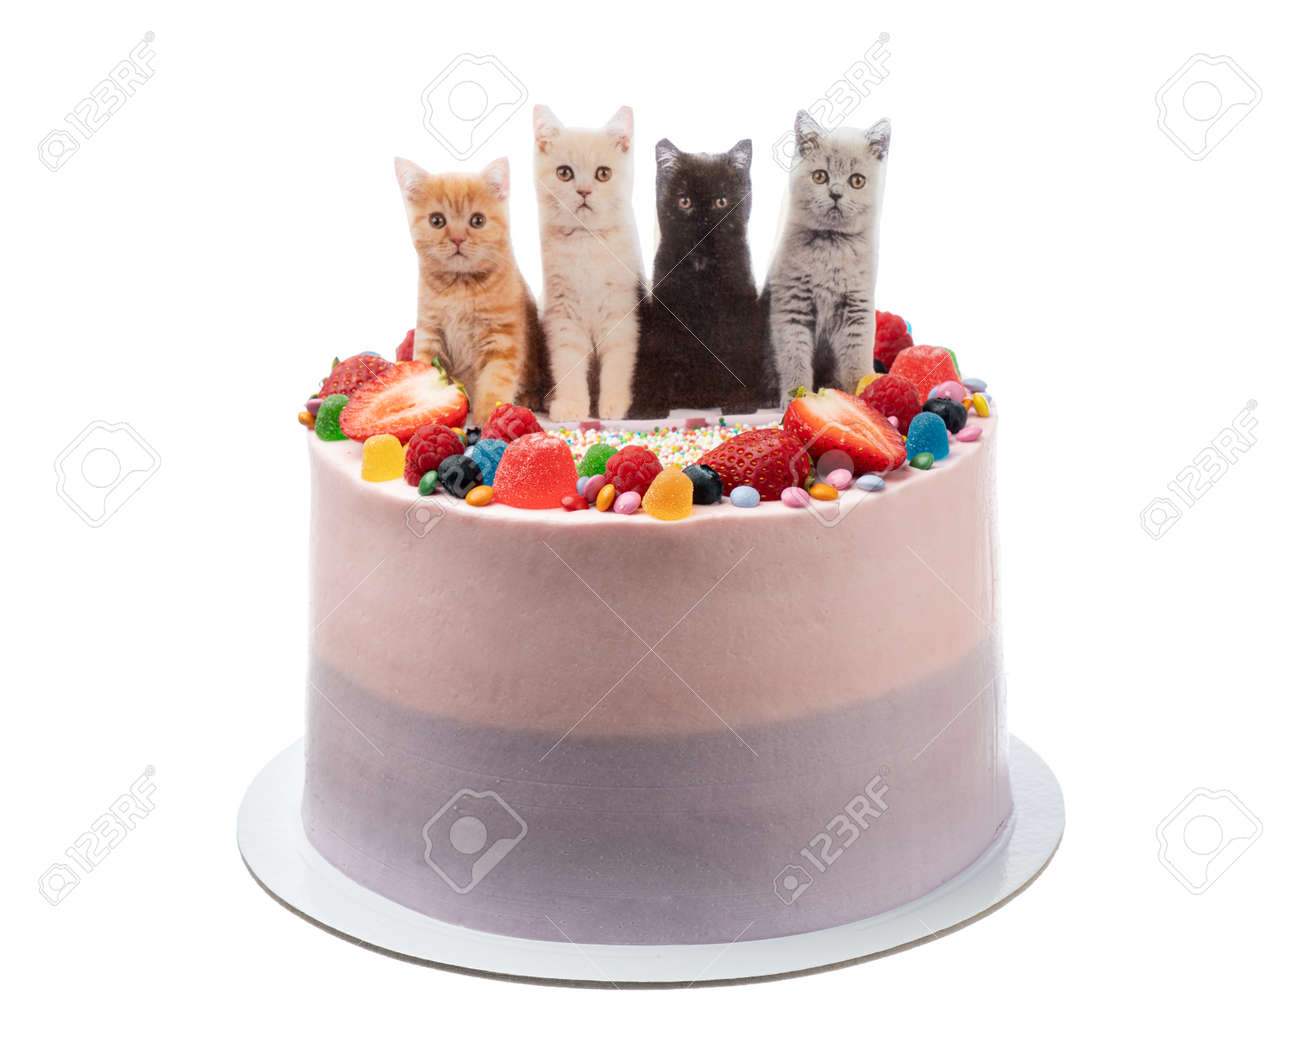 Super Cheerful Birthday Cake Made Of Sweets And Cats Stock Photo Personalised Birthday Cards Paralily Jamesorg